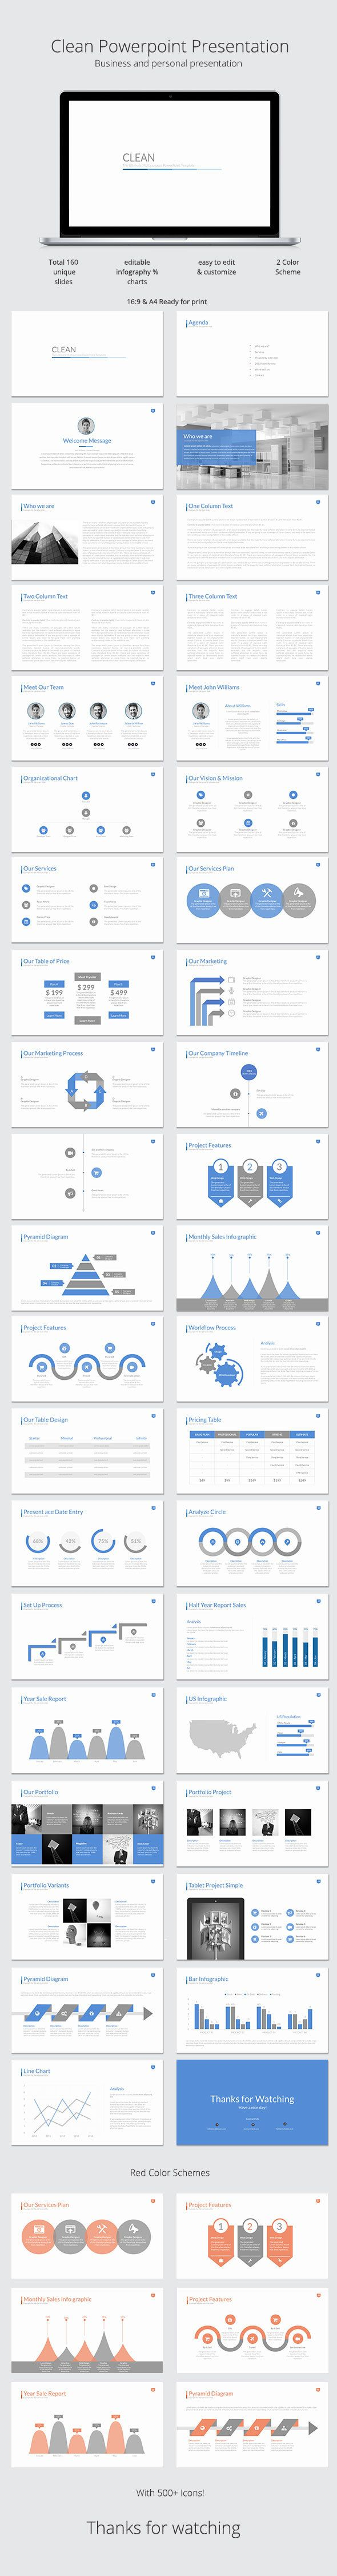 Coolmathgamesus  Surprising  Ideas About Powerpoint Presentations On Pinterest With Exciting Clean Powerpoint Template With Easy On The Eye Powerpoint Tests Also Network Powerpoint In Addition Samples Of Powerpoint Presentations Slides And Science Safety Rules Powerpoint As Well As Download Free Microsoft Powerpoint  Additionally Hpm Powerpoints From Pinterestcom With Coolmathgamesus  Exciting  Ideas About Powerpoint Presentations On Pinterest With Easy On The Eye Clean Powerpoint Template And Surprising Powerpoint Tests Also Network Powerpoint In Addition Samples Of Powerpoint Presentations Slides From Pinterestcom